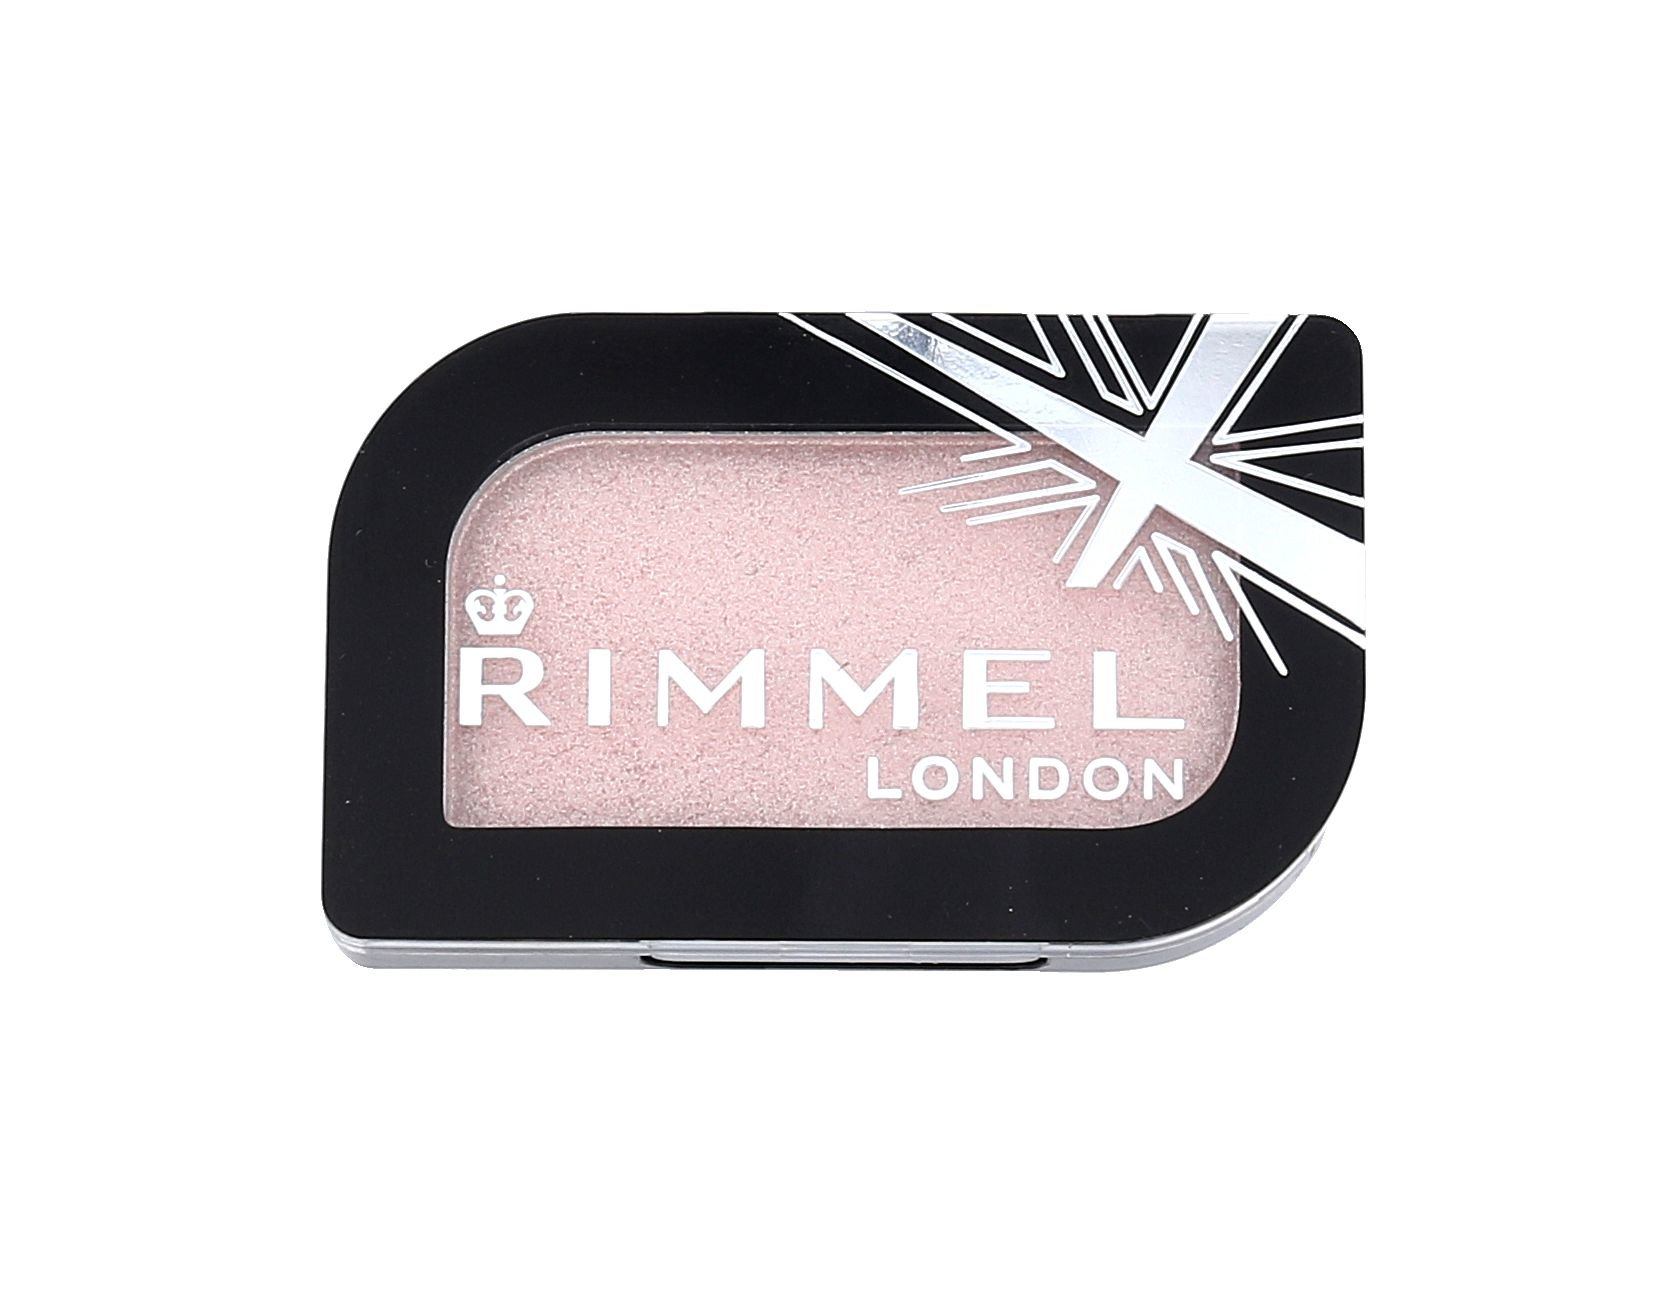 Rimmel London Magnif Eyes Cosmetic 3,5ml 005 Superstar Sparkle